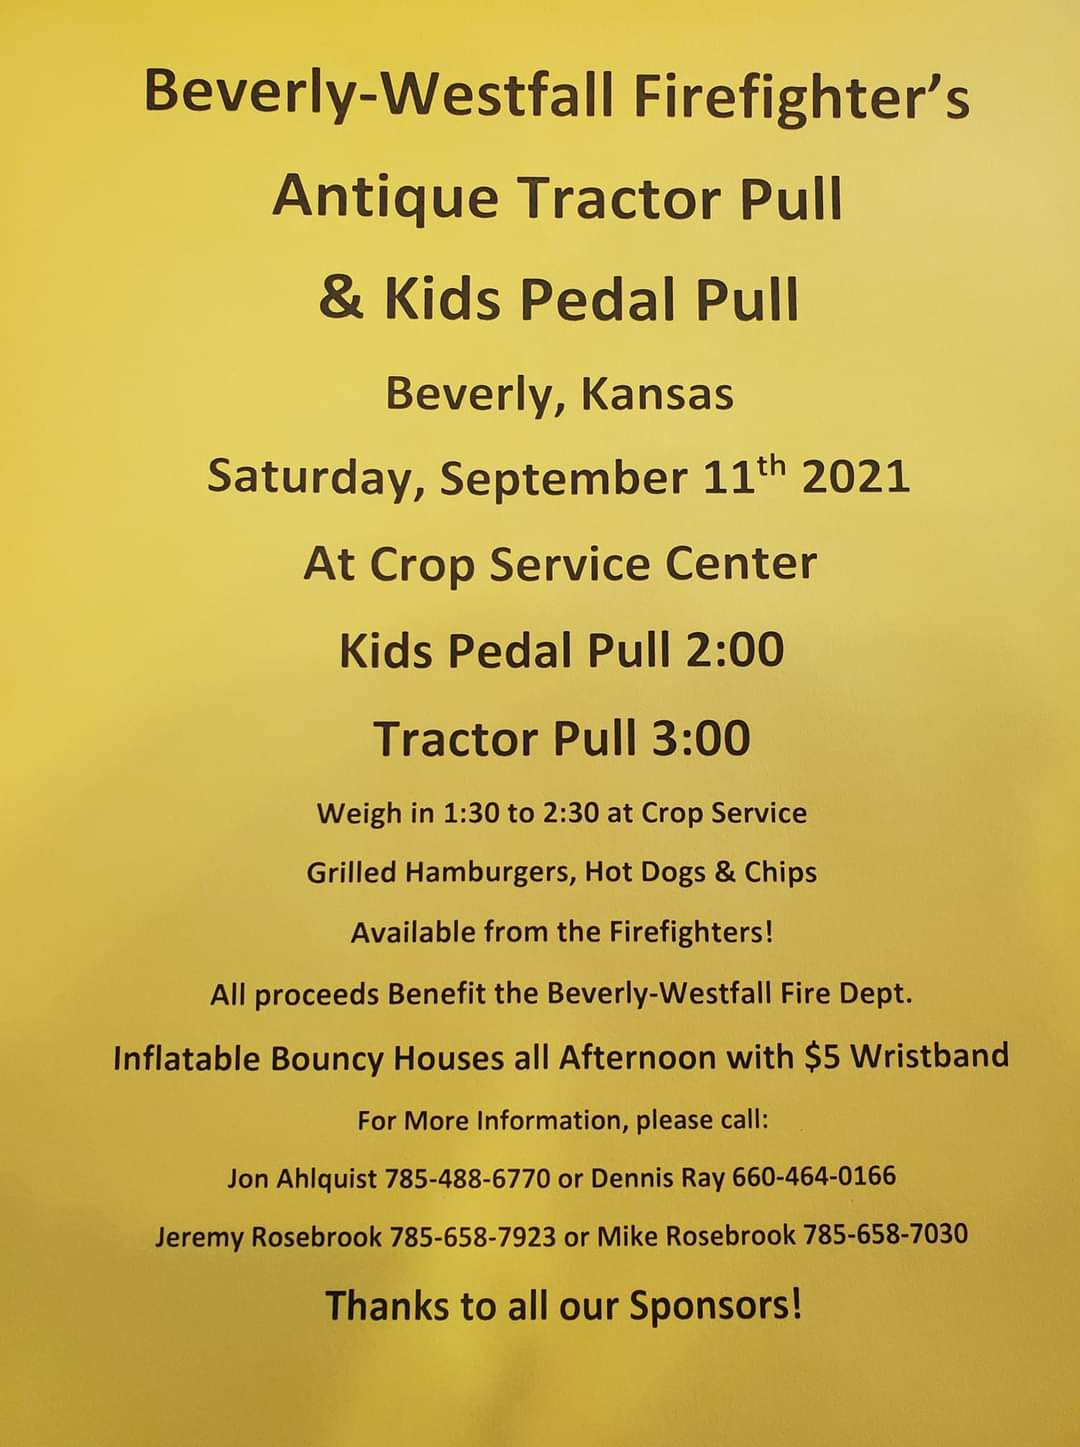 Beverly-Westfall Firefighter's Antique Tractor Pull & Kids Pedal Pull